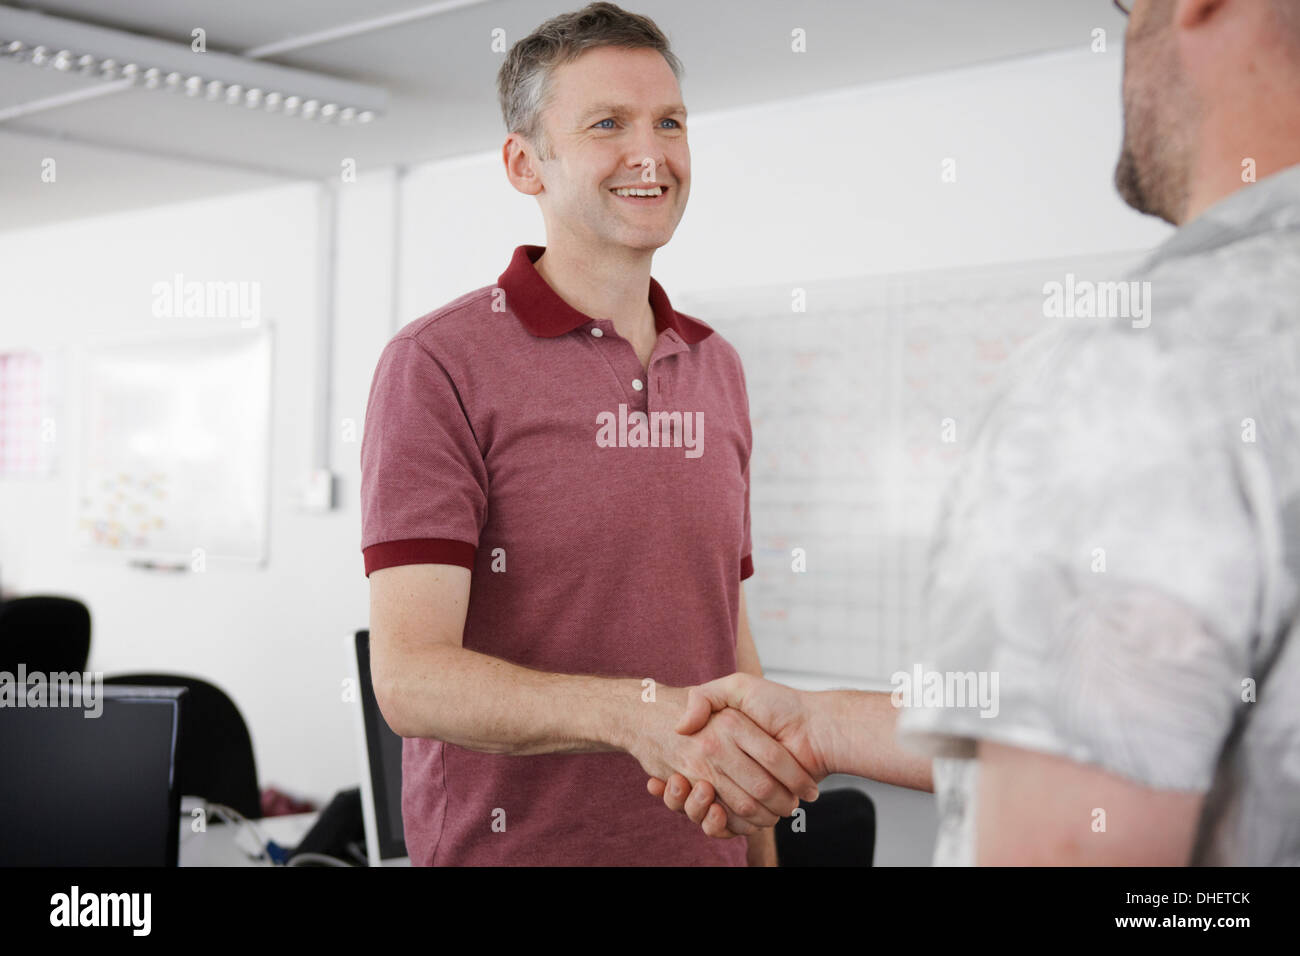 Men shaking hands in office - Stock Image